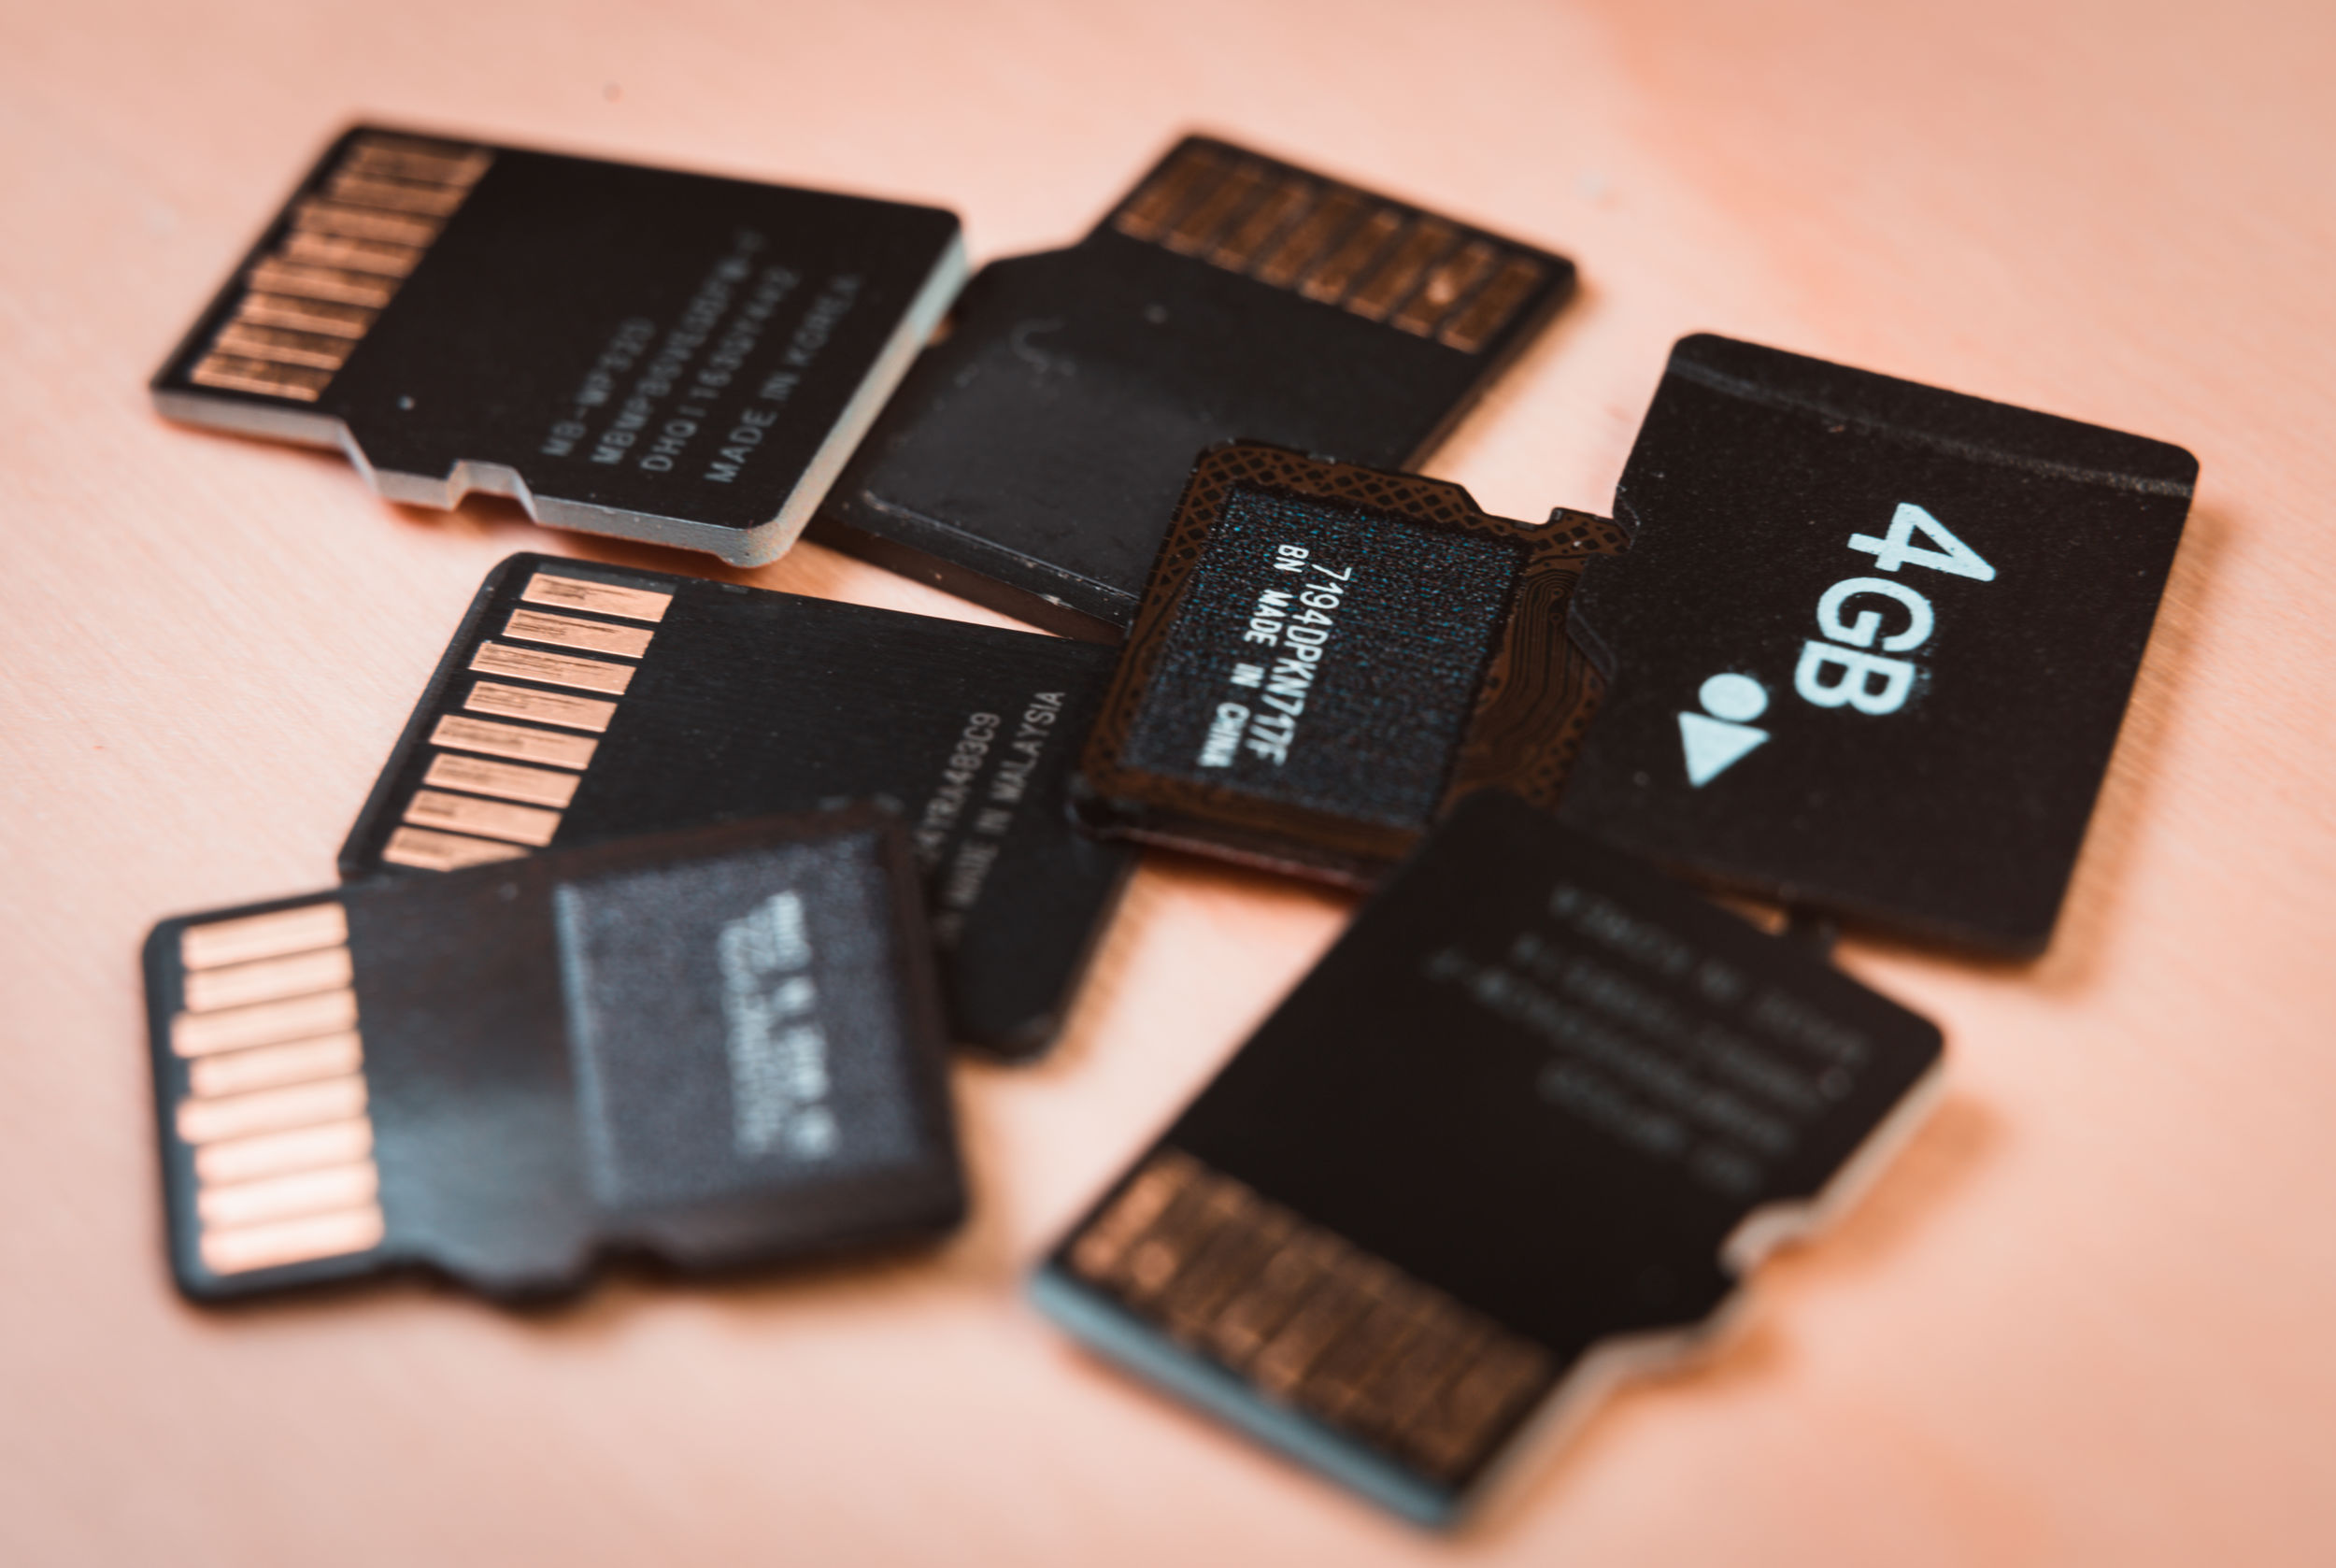 Best Micro SD Card 2020: Shopping Guide & Review